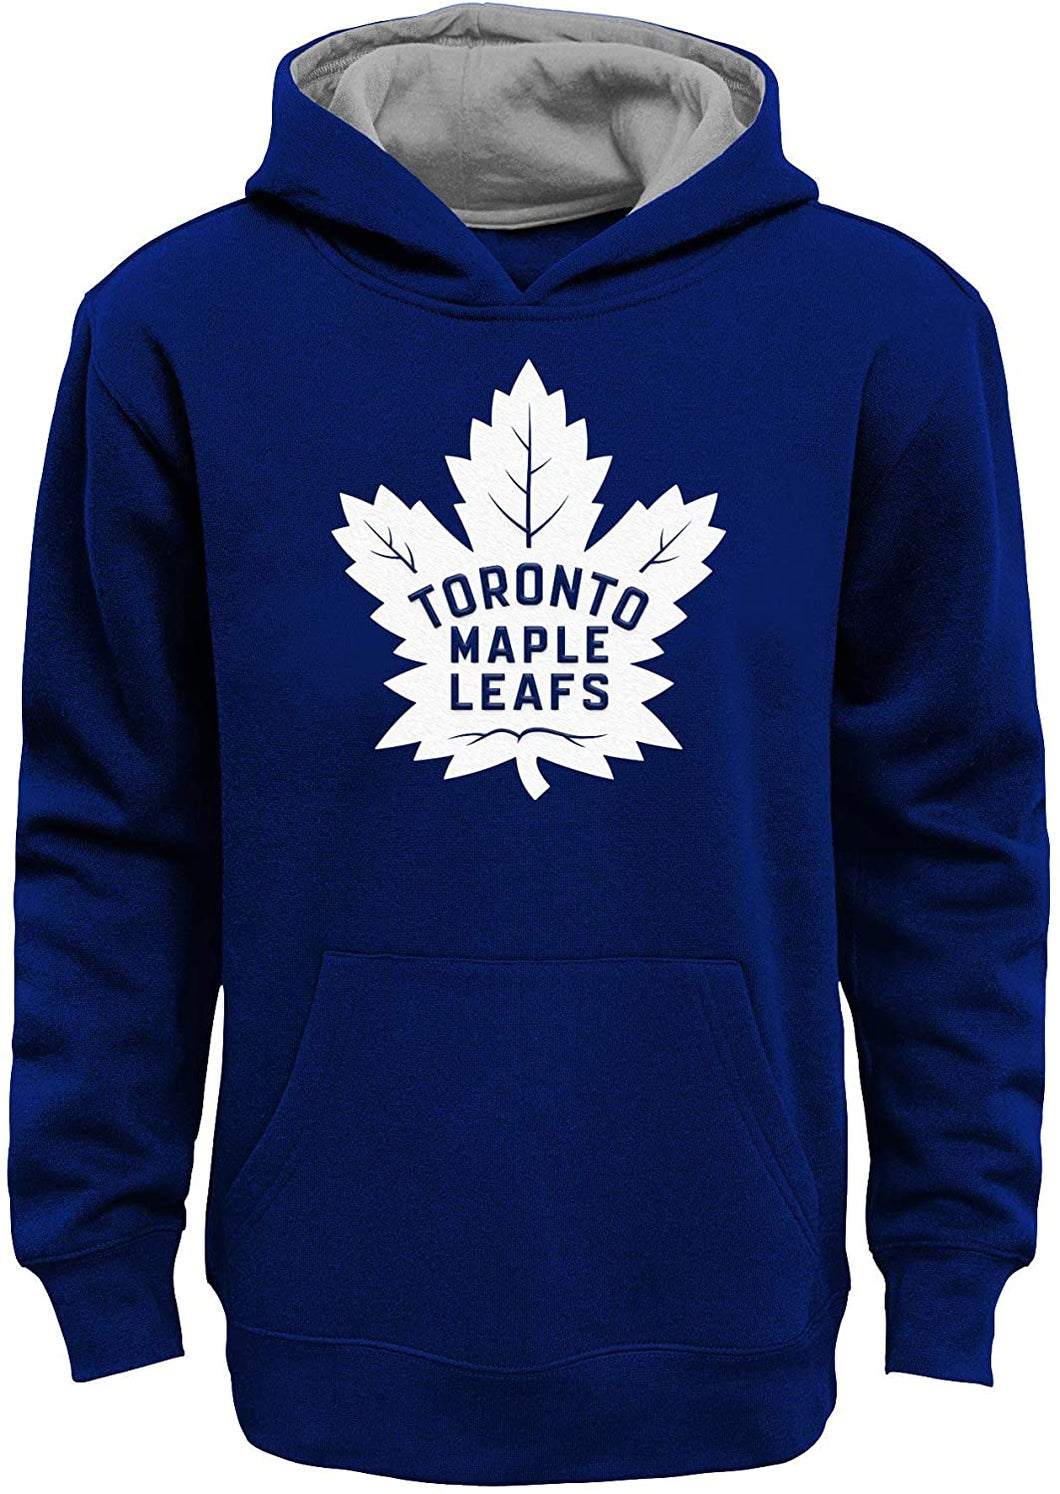 Toronto Maple Leafs NHL Child & Youth Prime Basic Pullover Fleece Hoodie